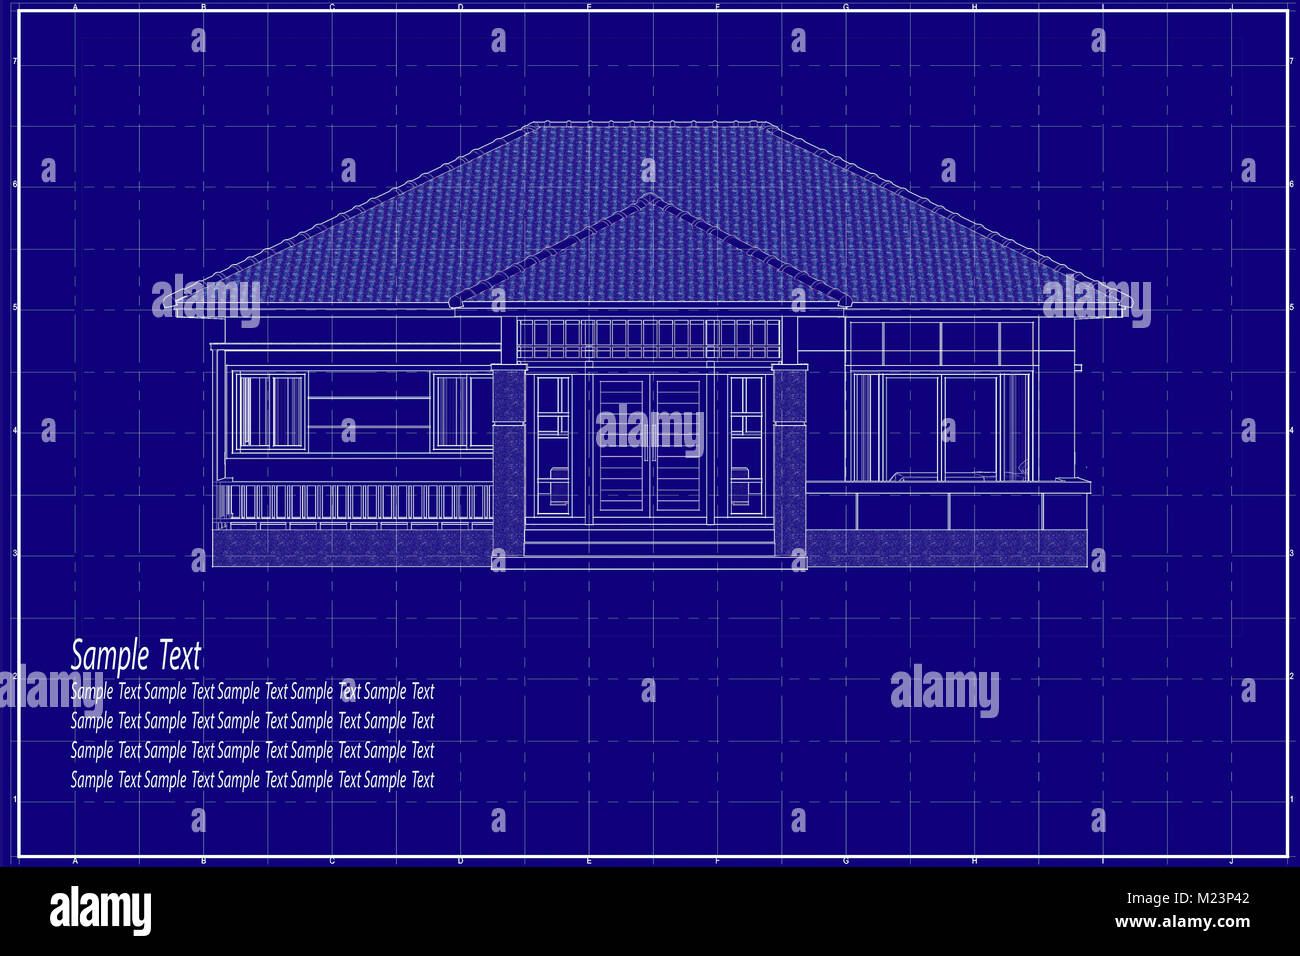 Architectural drawing elevation house on blueprint stock photo architectural drawing elevation house on blueprint malvernweather Image collections